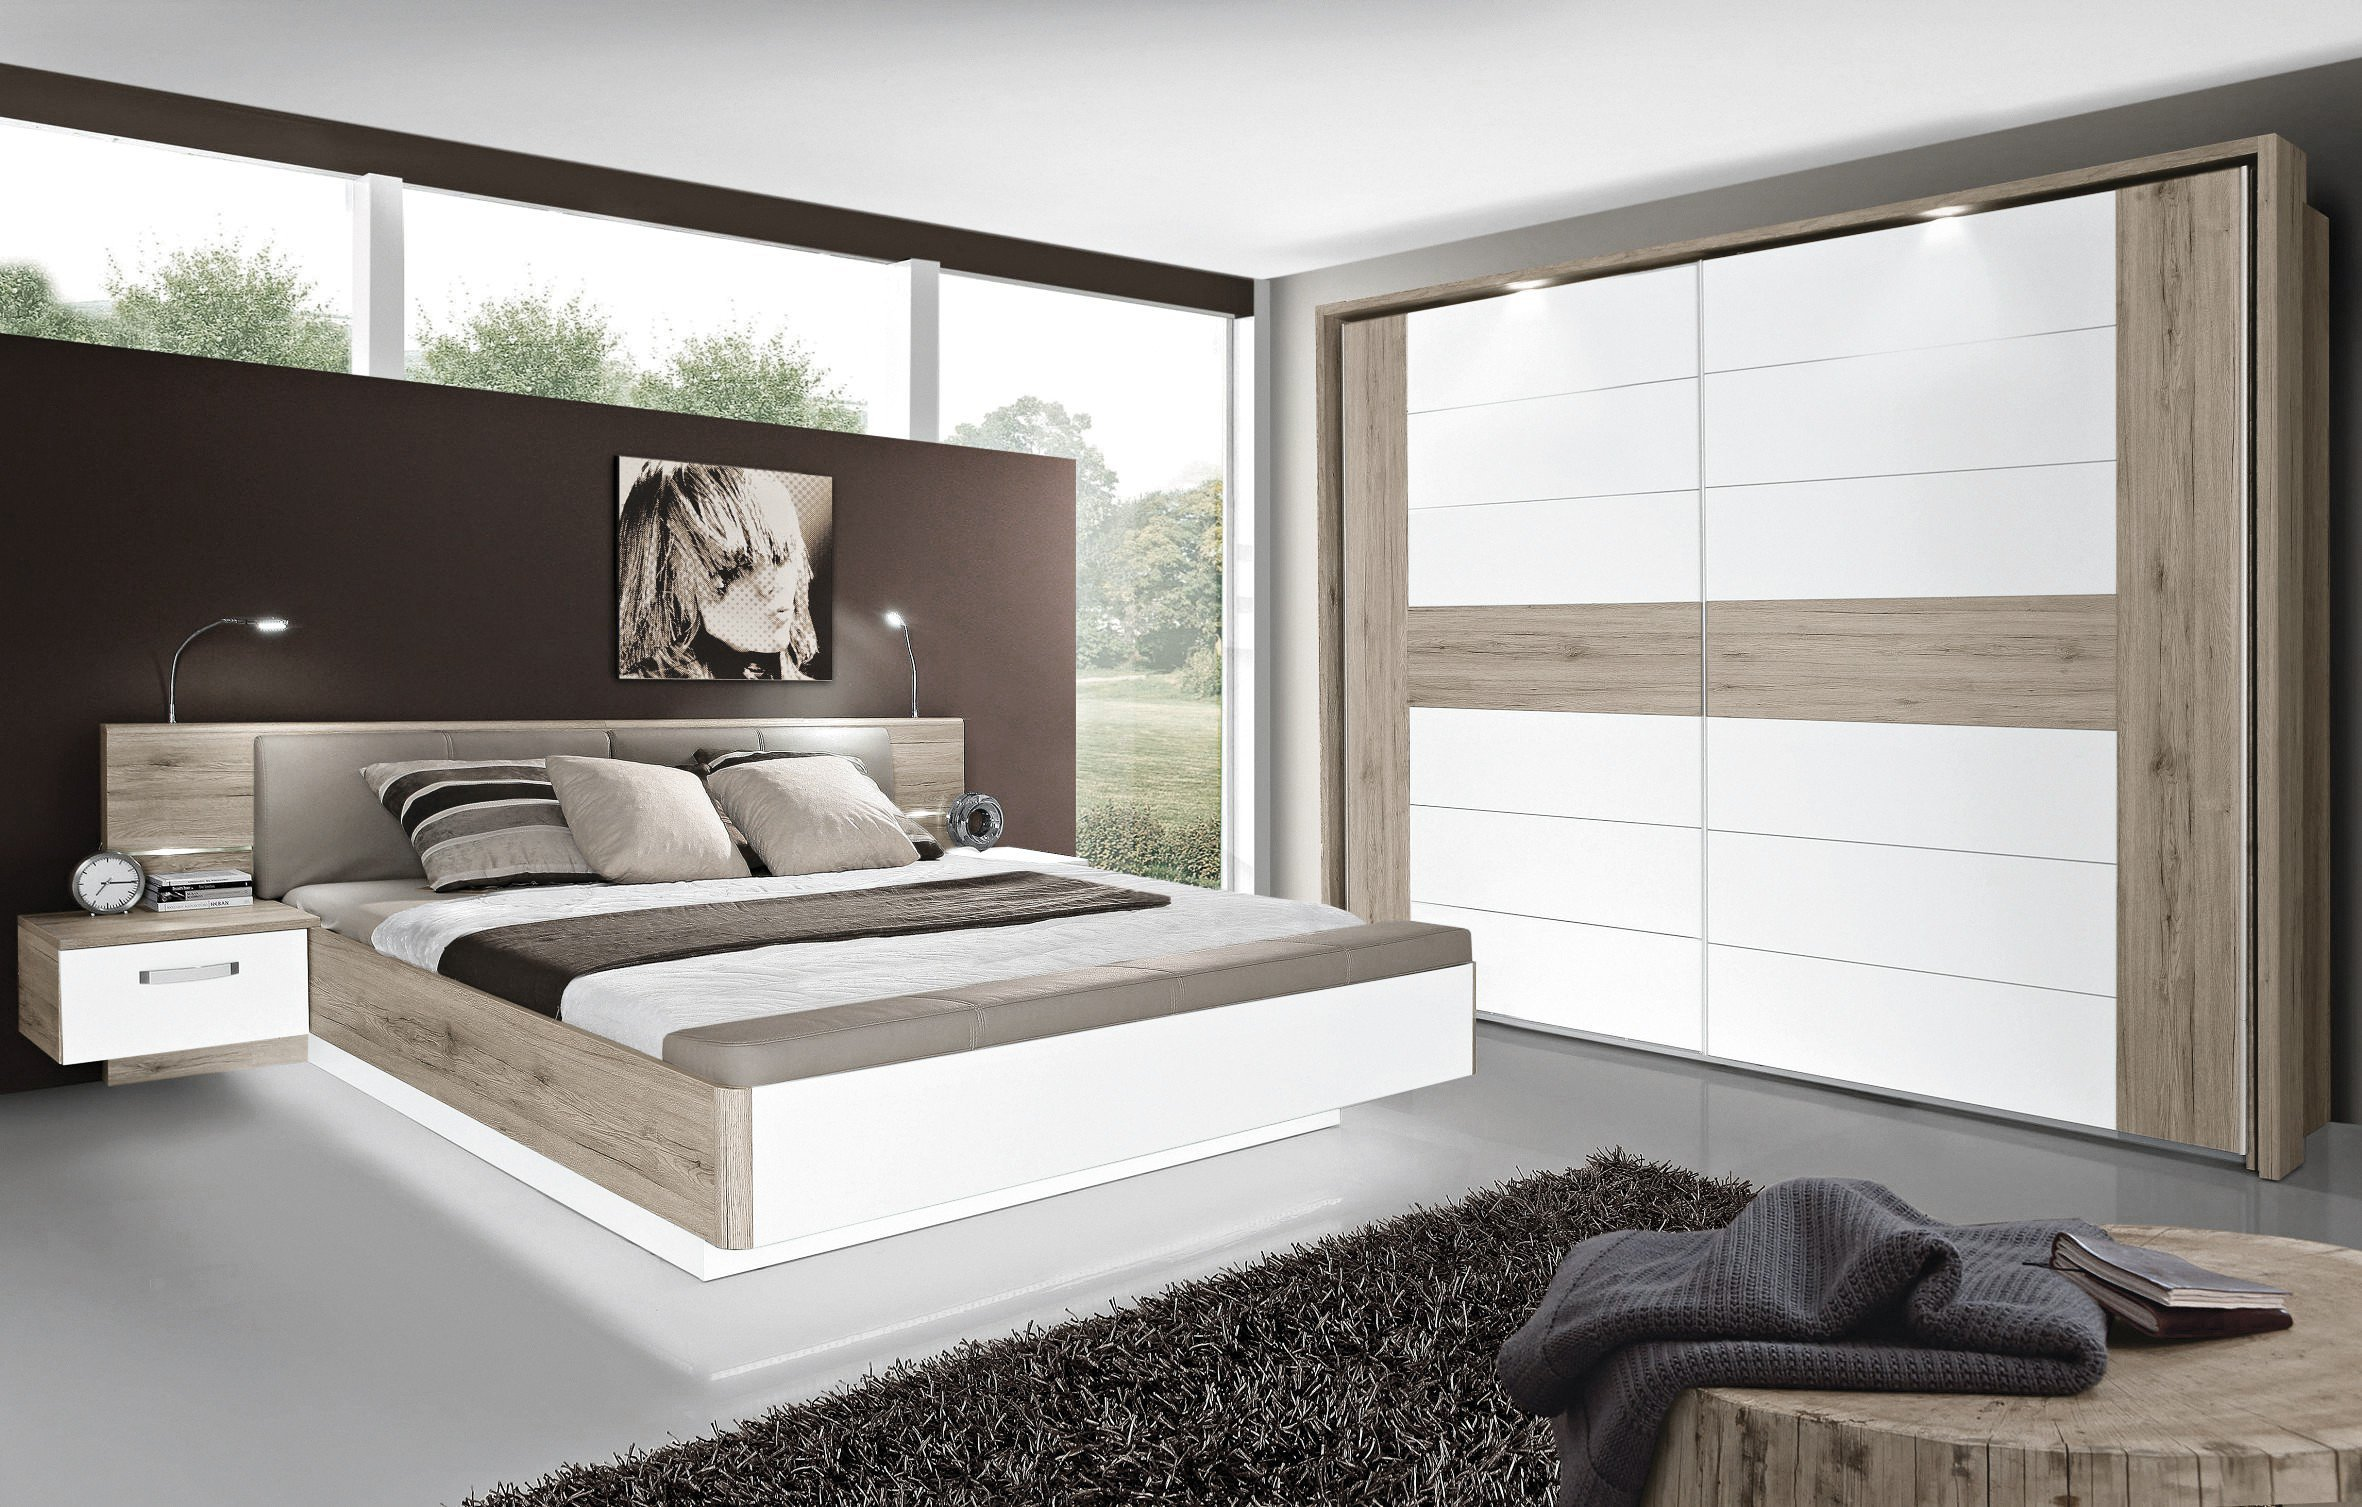 rondino von forte schlafzimmer beton optik wei m bel letz ihr online shop. Black Bedroom Furniture Sets. Home Design Ideas